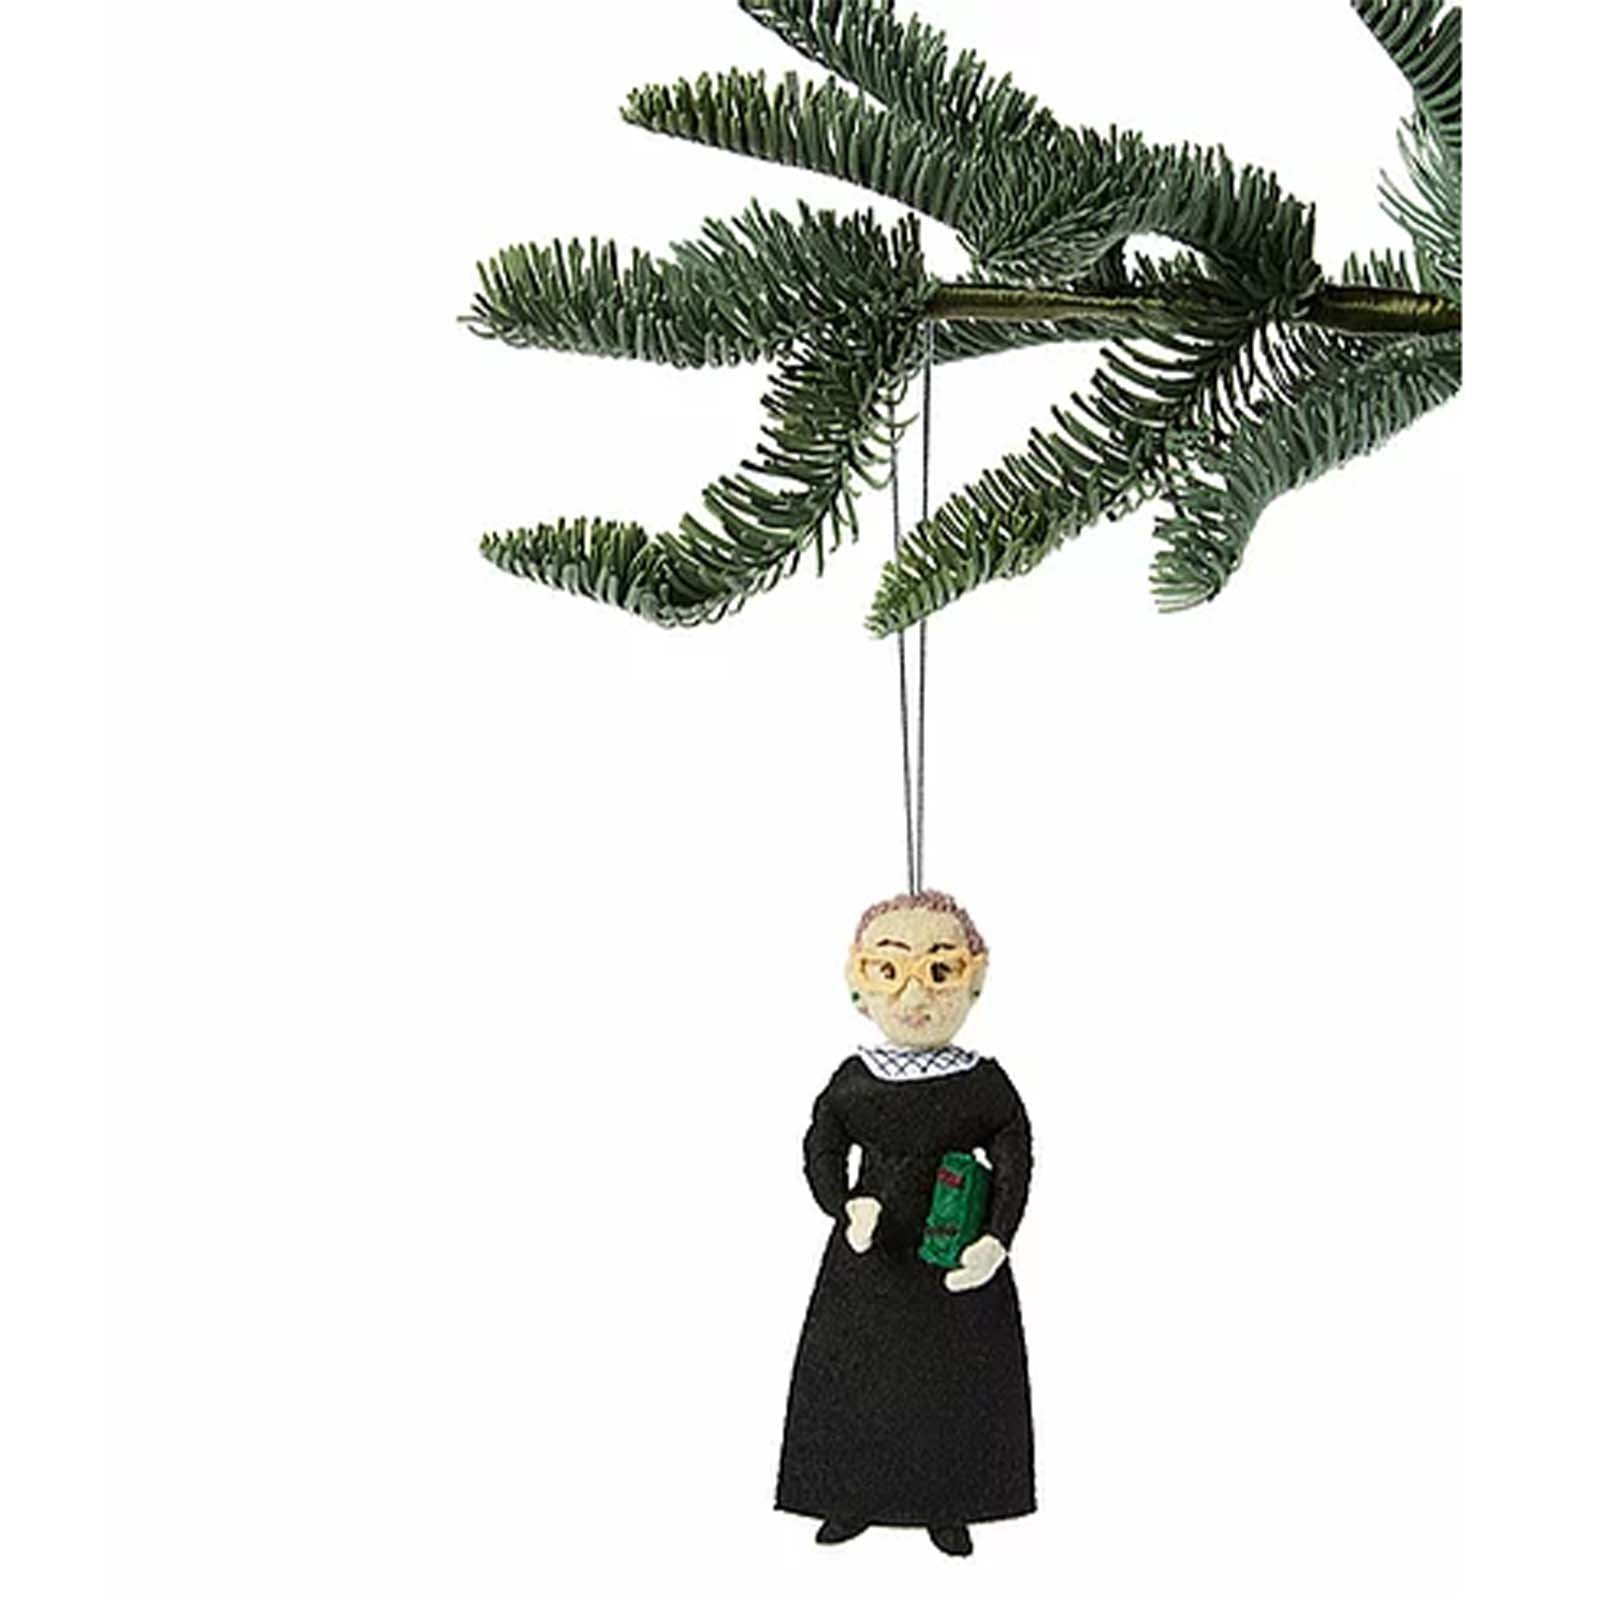 Silk Road Bazaar RBG ornament